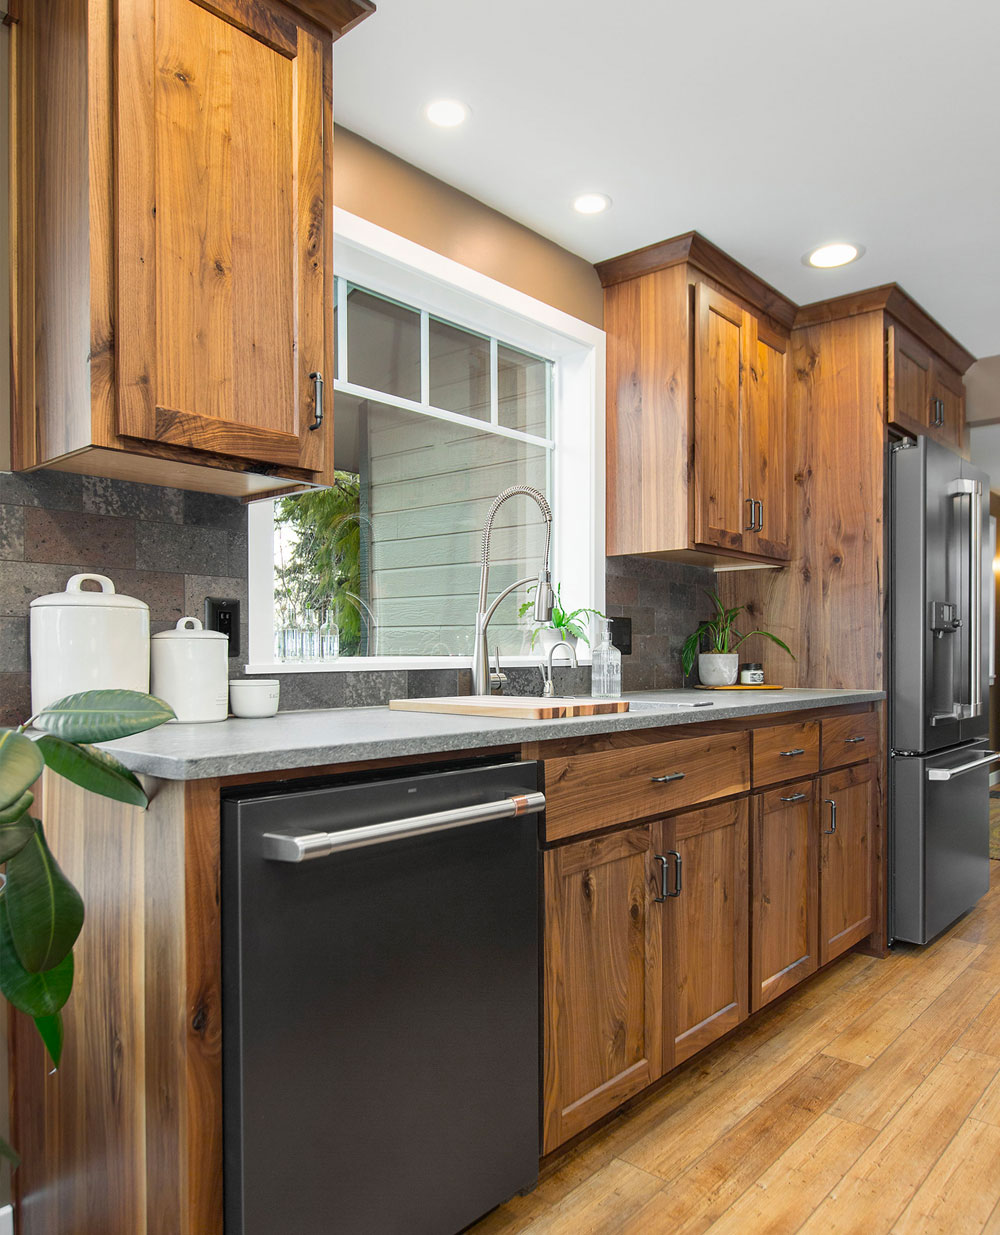 Rustic Cabin Kitchen Counter